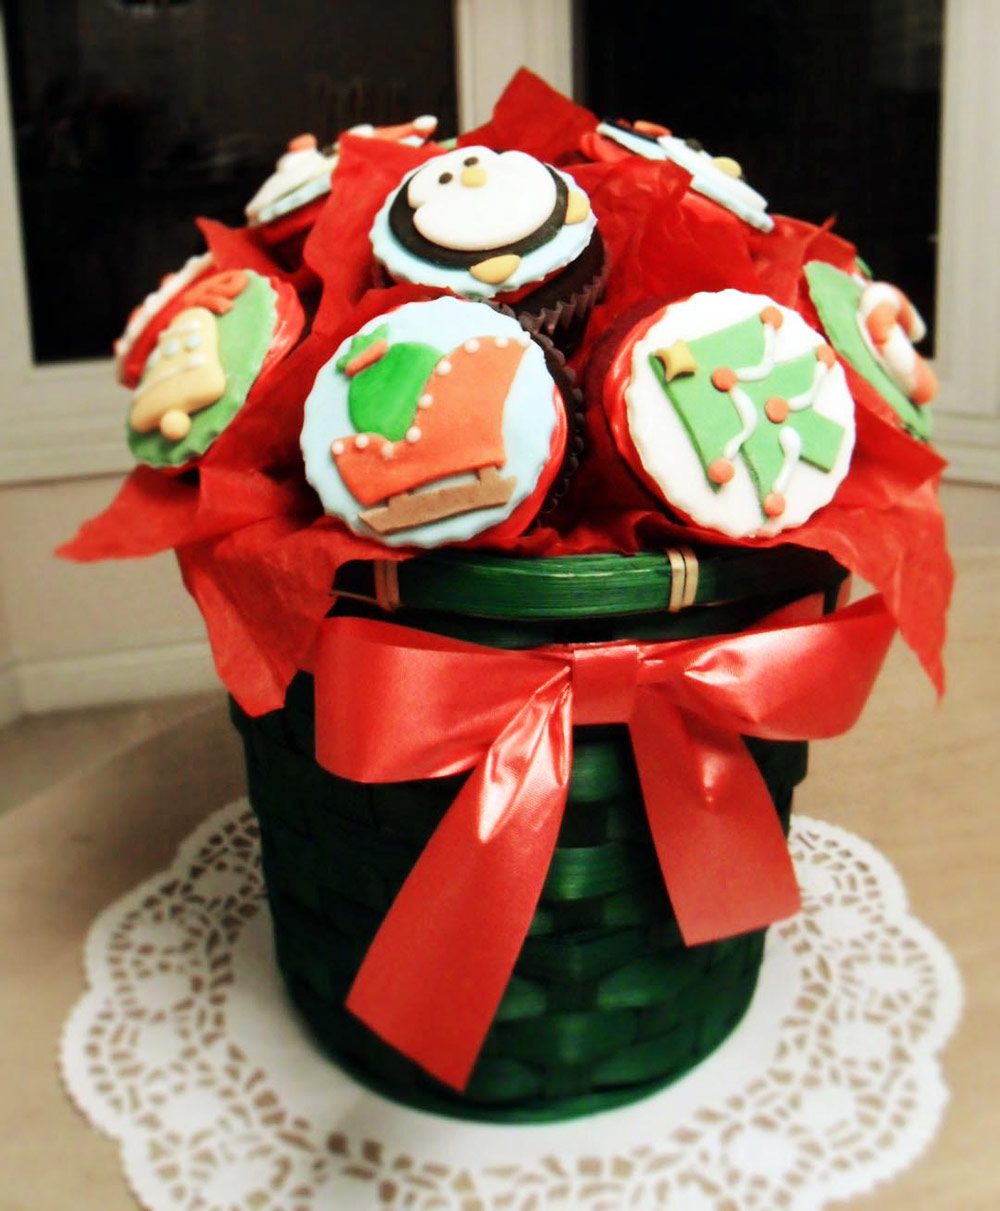 Christmas Cupcakes Bouquet - DIY Holiday Gift Ideas